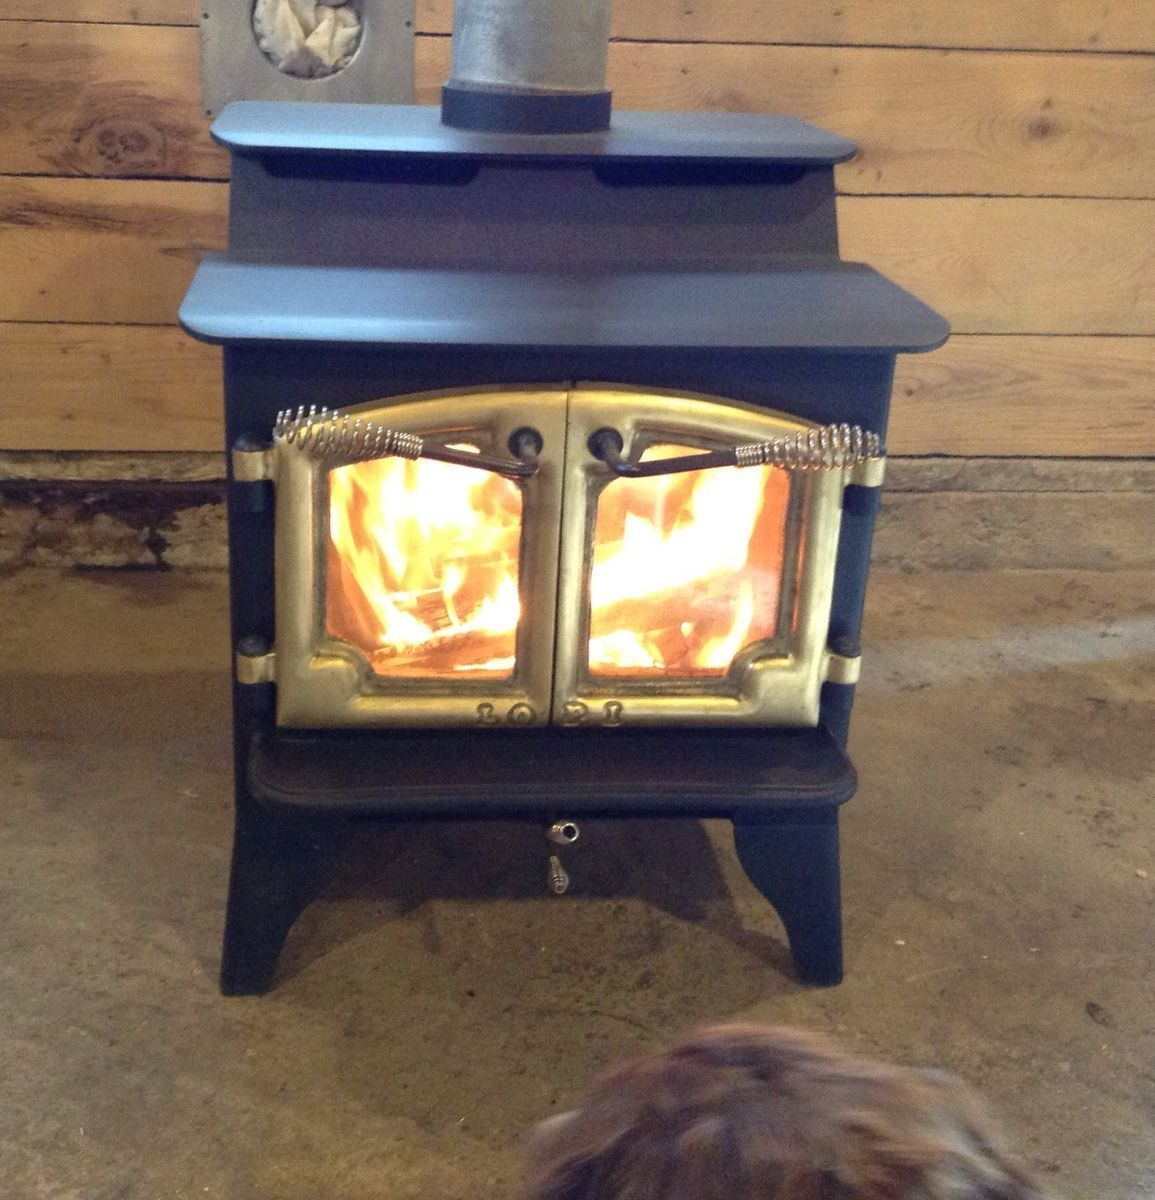 Lopi Wood Stove Fireplace Model 380 Fisher Style - Lopi Wood Stove Fireplace Model 380 Fisher Style New Zealand